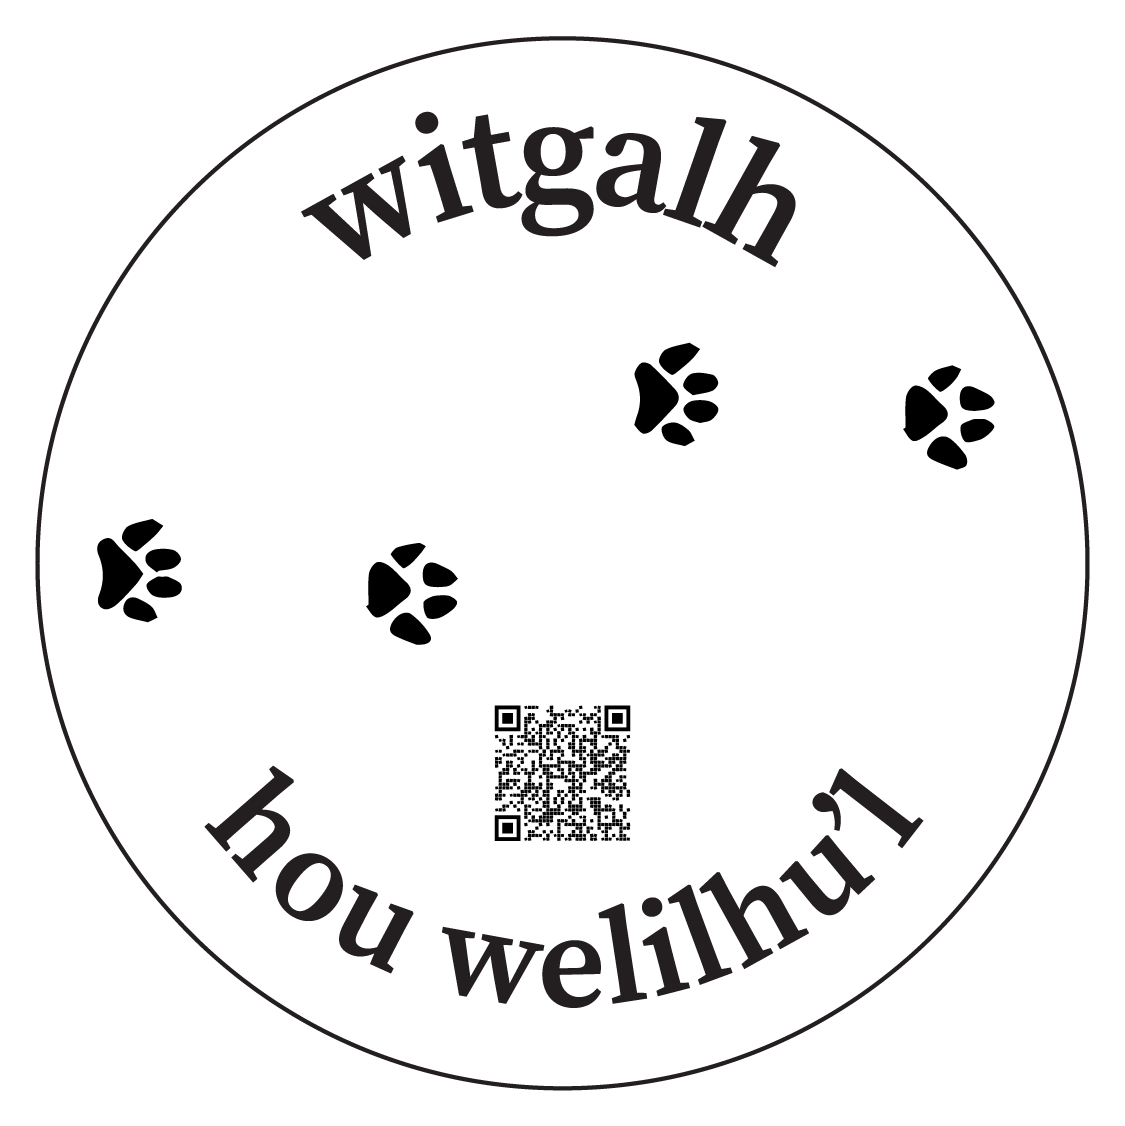 witgalh_hou_welilhul